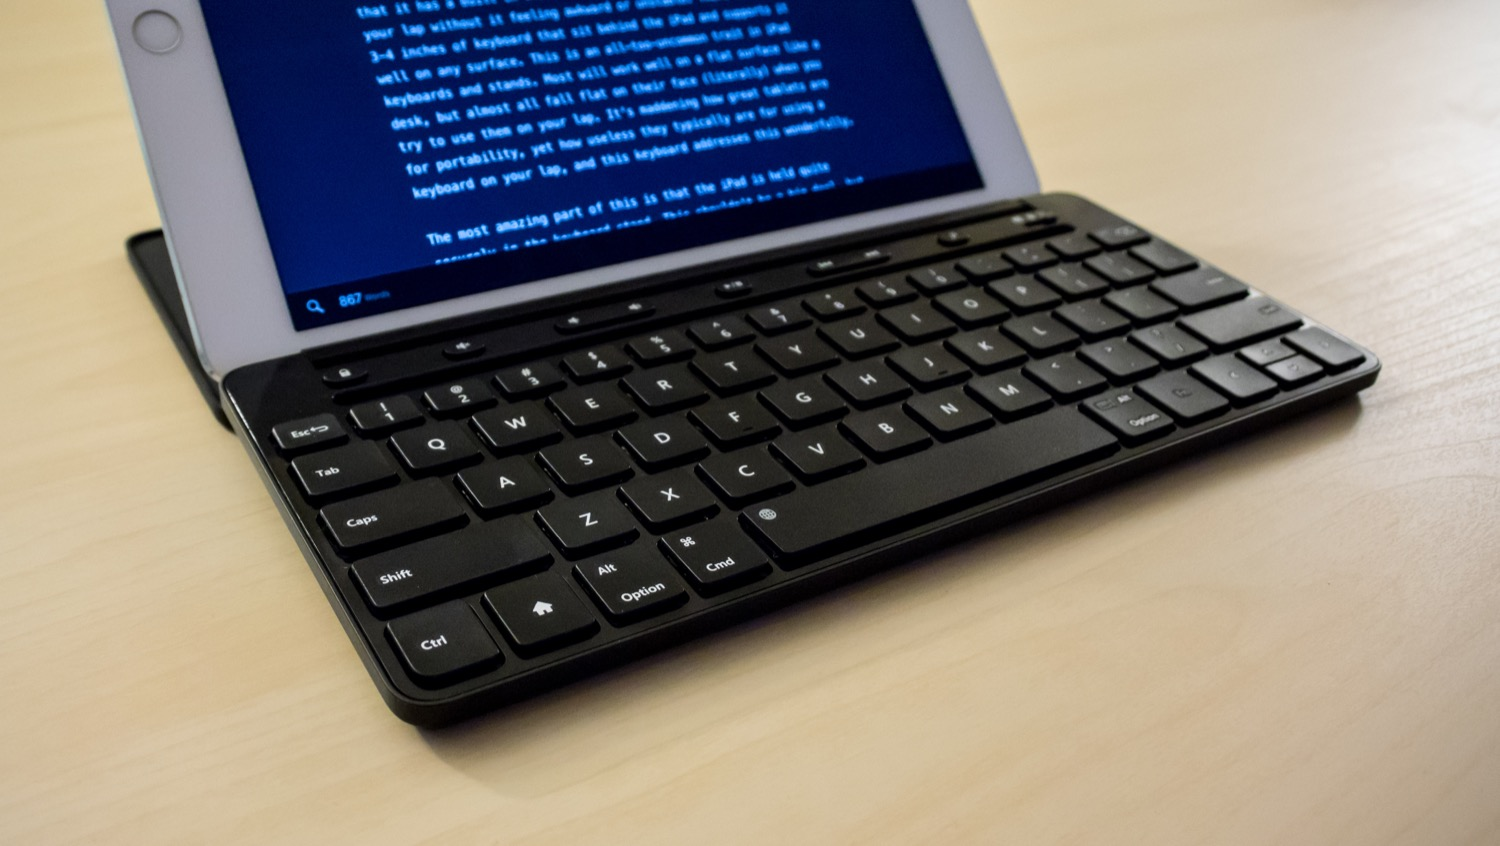 Microsoft Universal Mobile Keyboard For Ipad Review